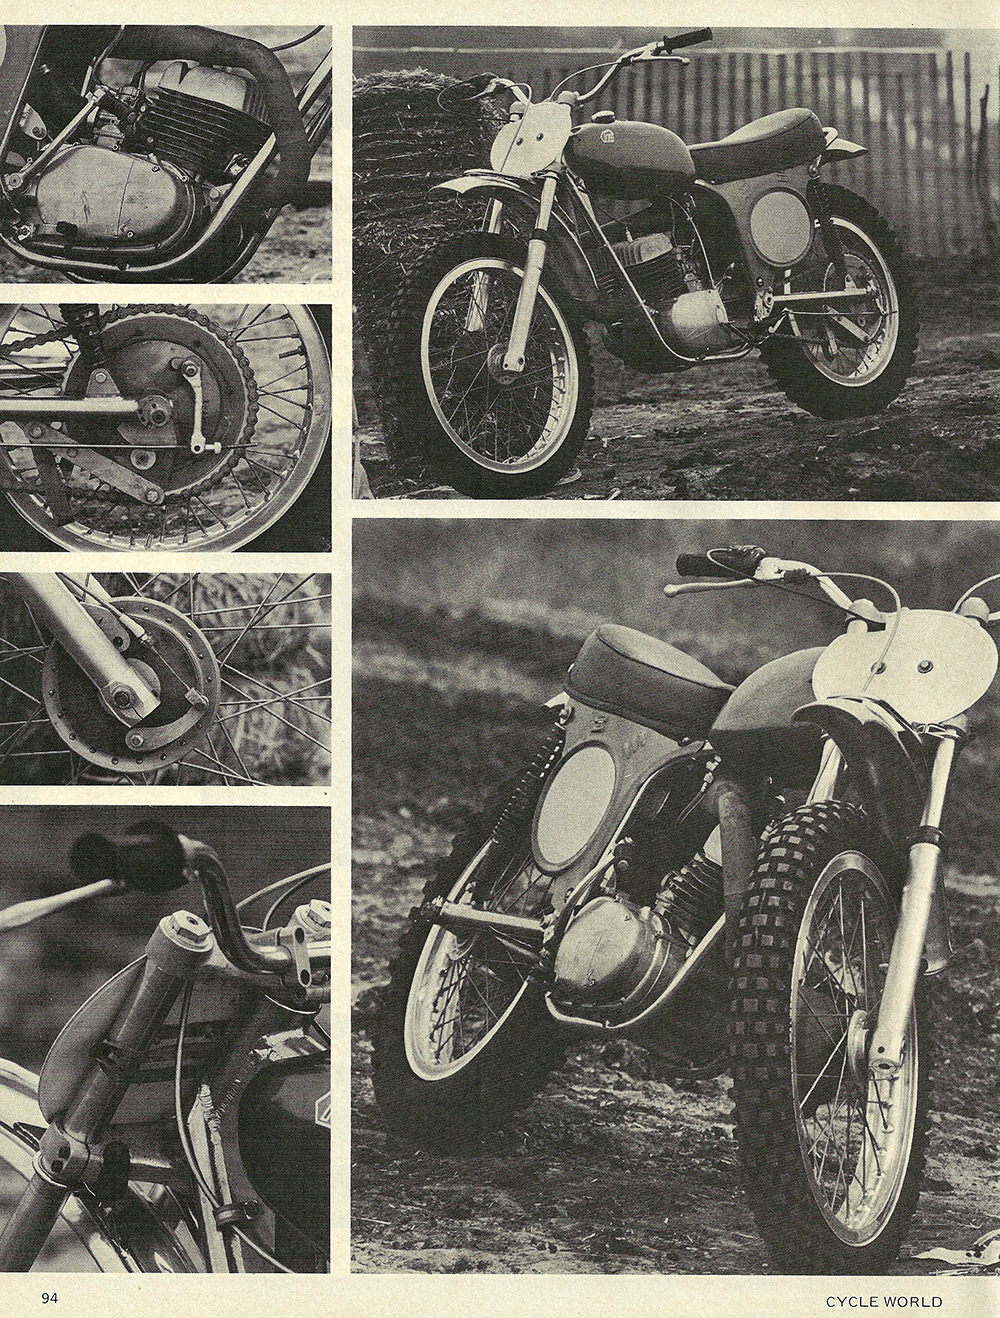 1971 Yamaha Cheney DT1 250 impression 01.jpg